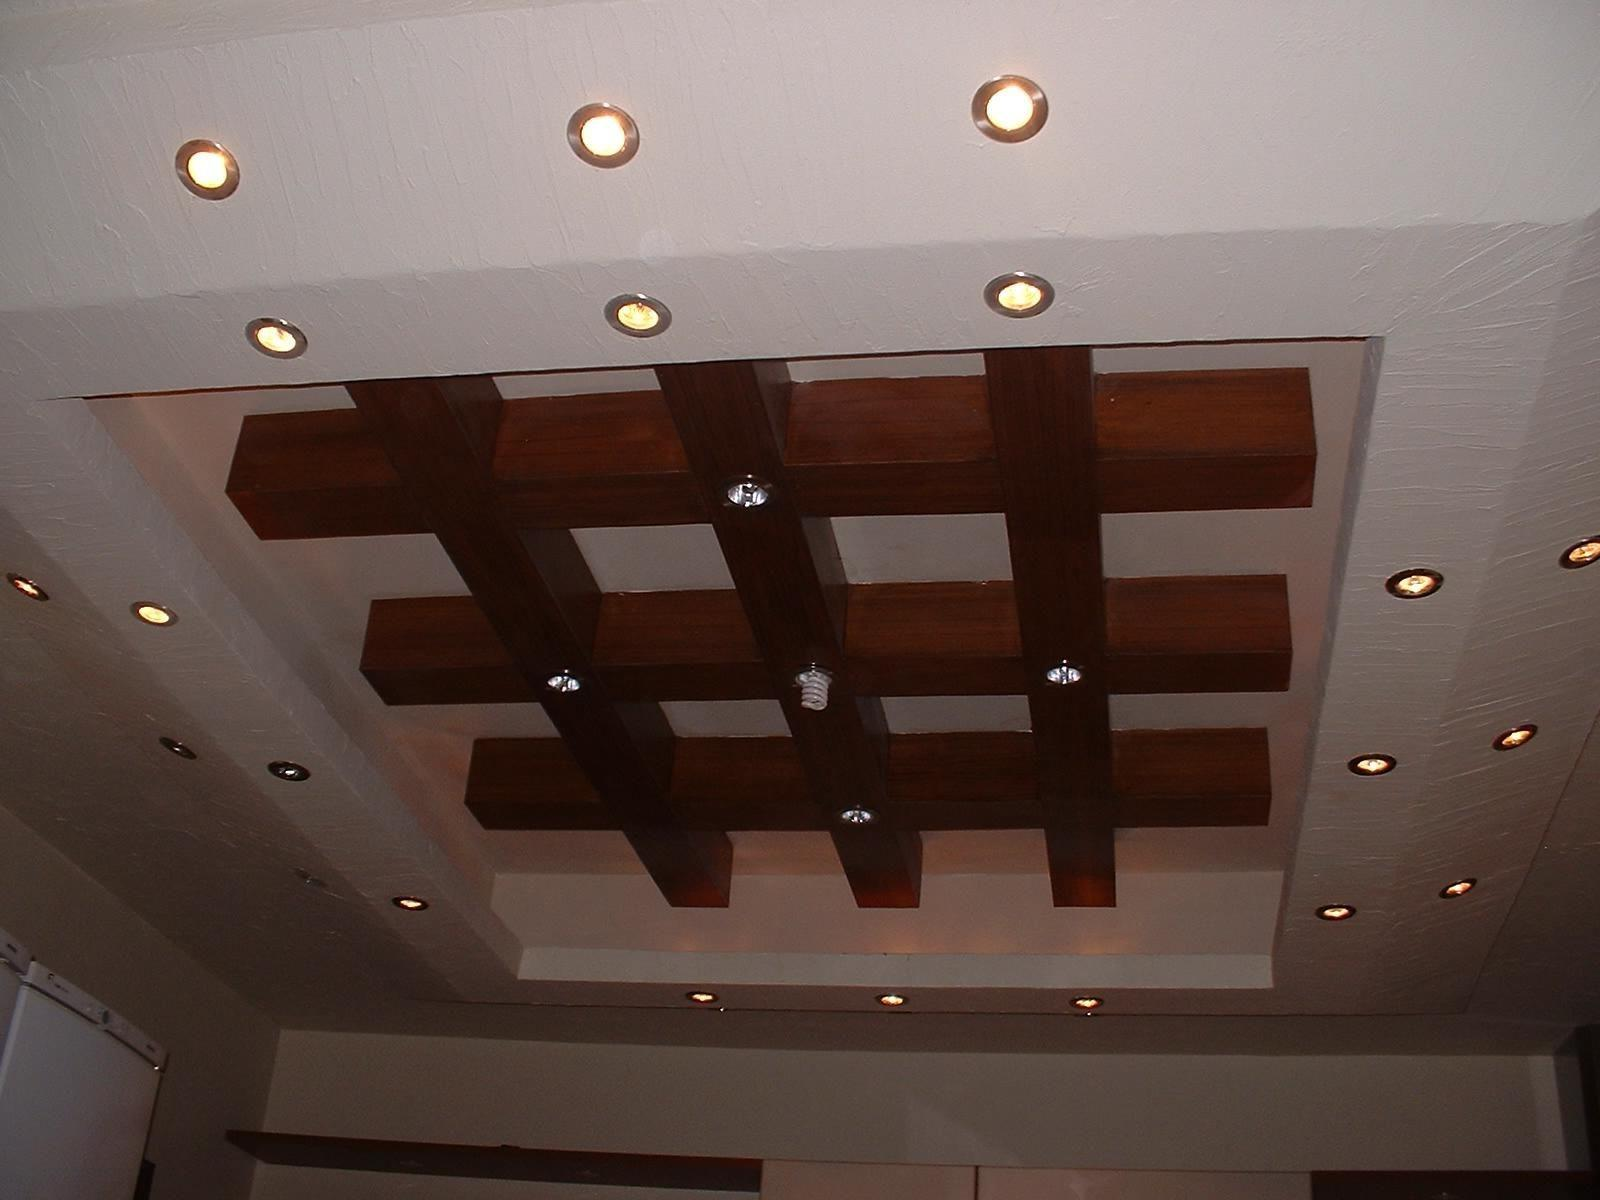 Large Rectangle Pop Ceiling Recessed Lighting Design Tray